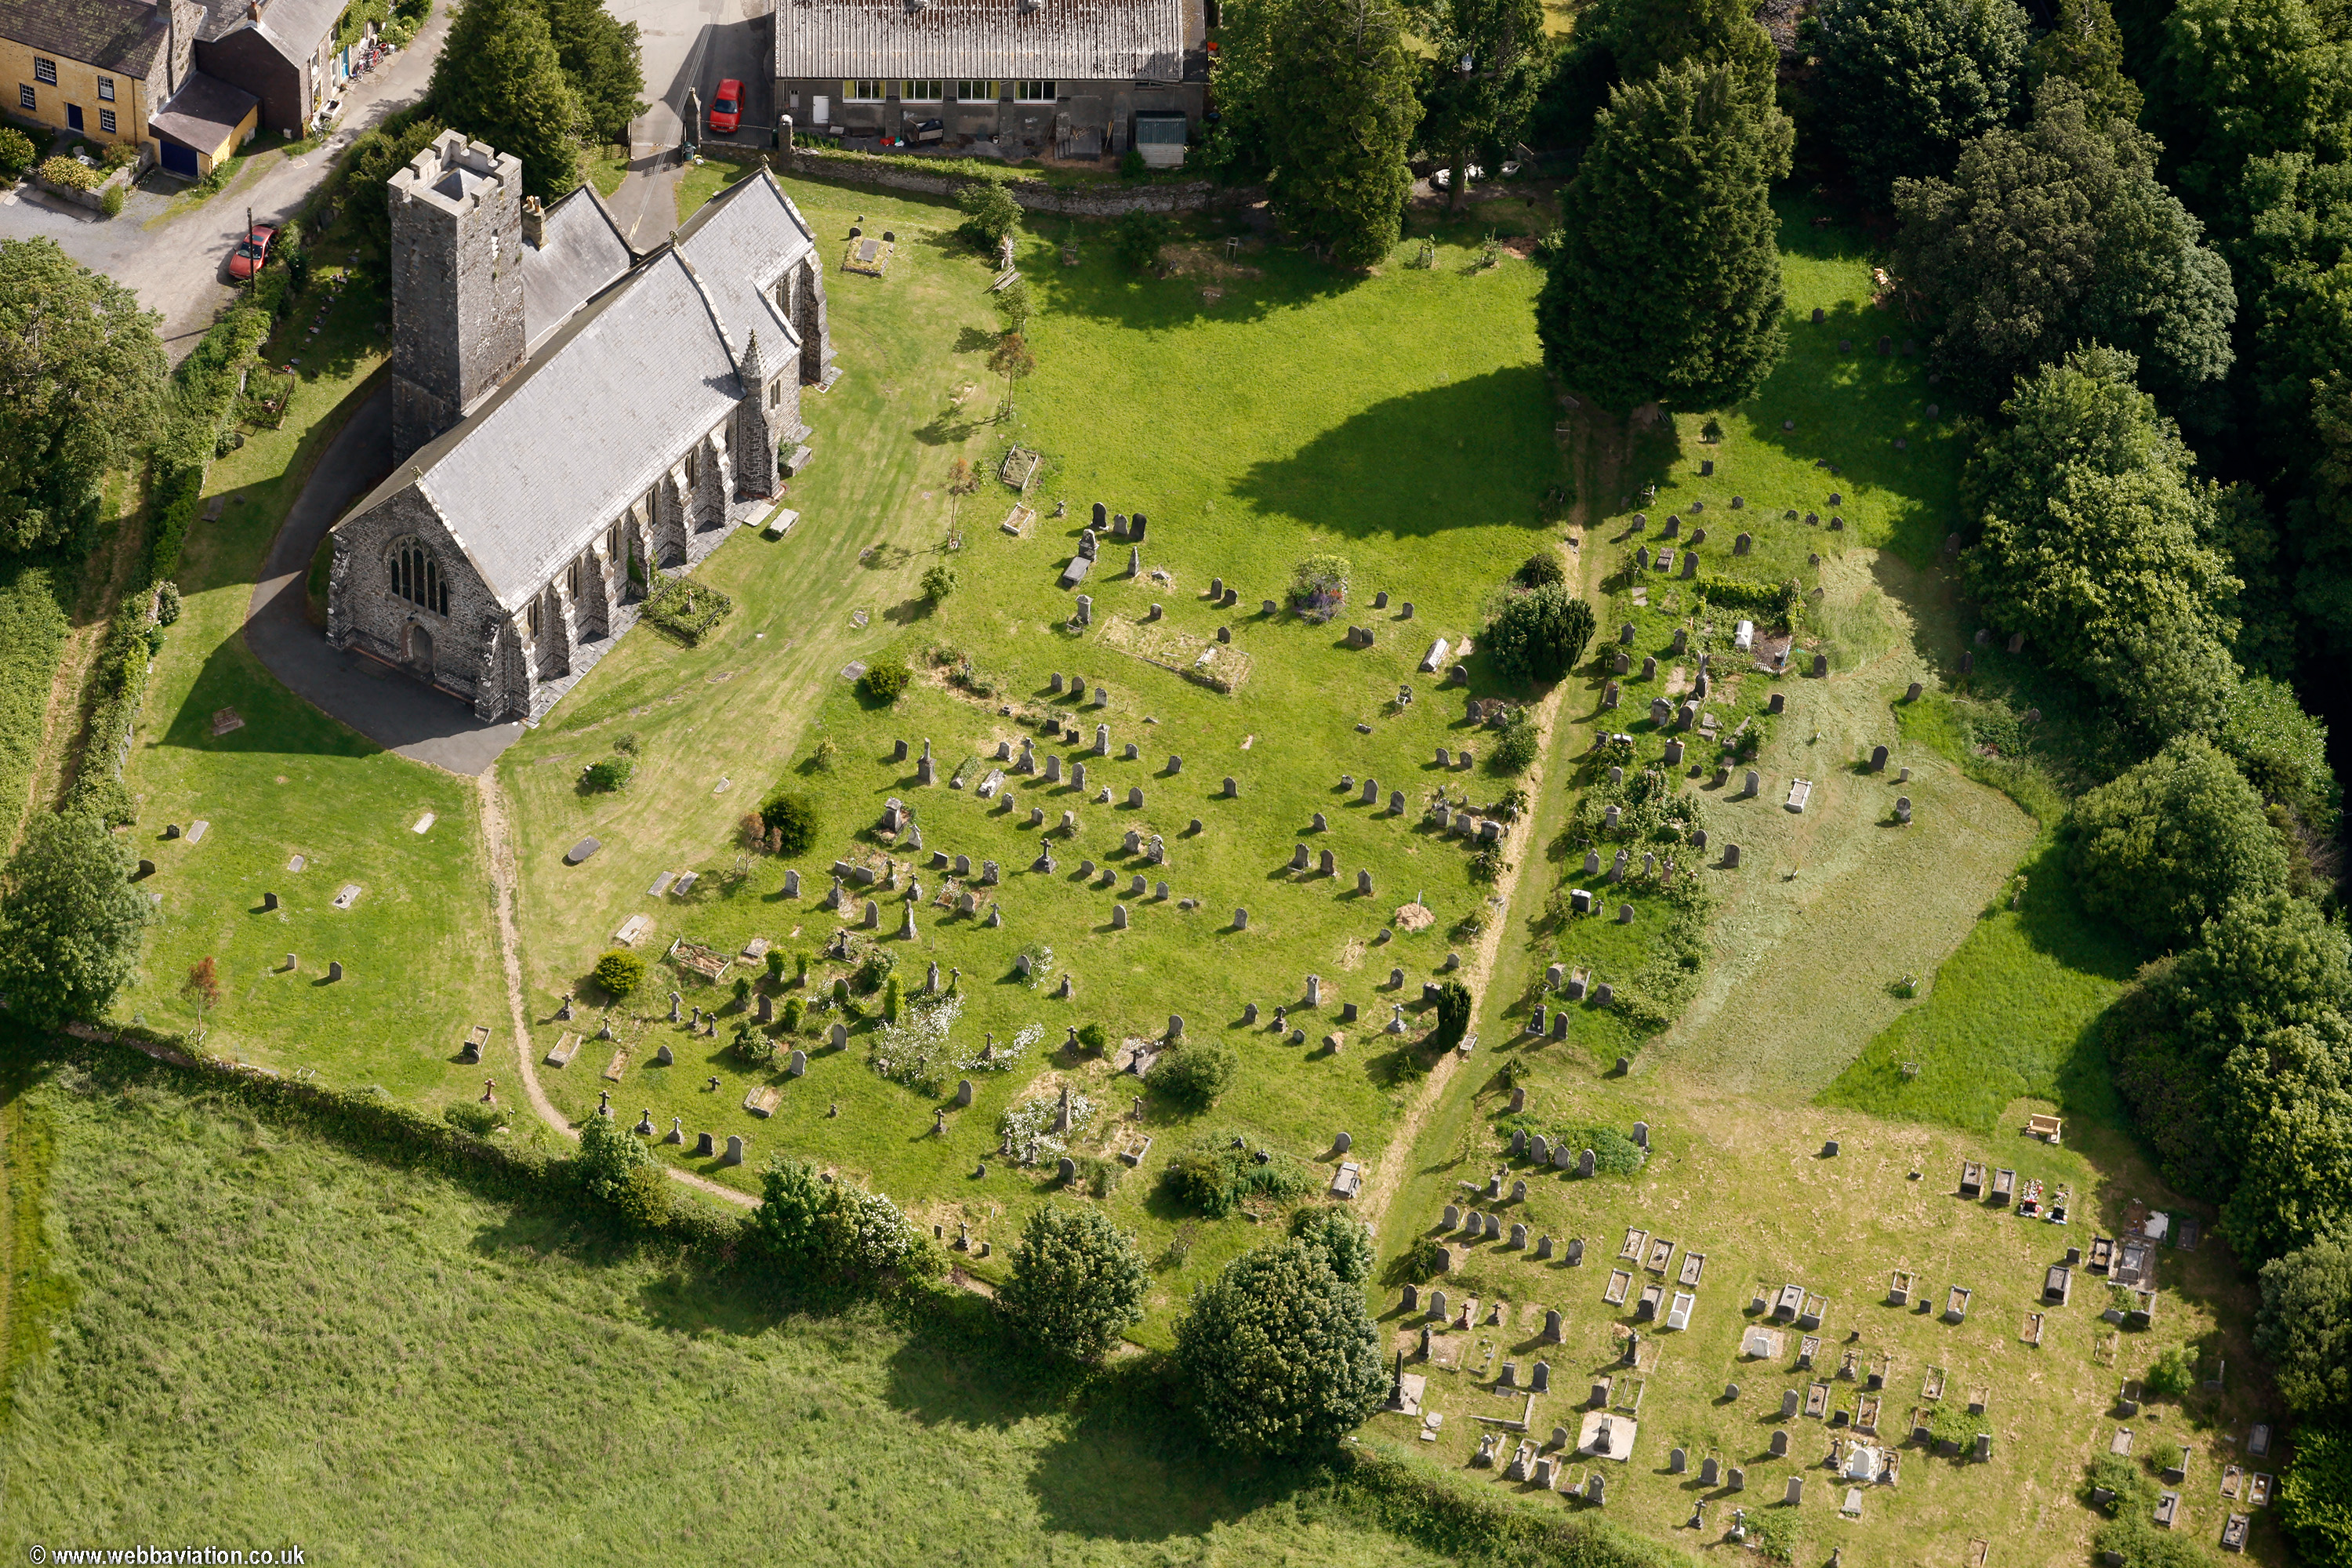 Narberth church Pembrokeshire Wales aerial photograph